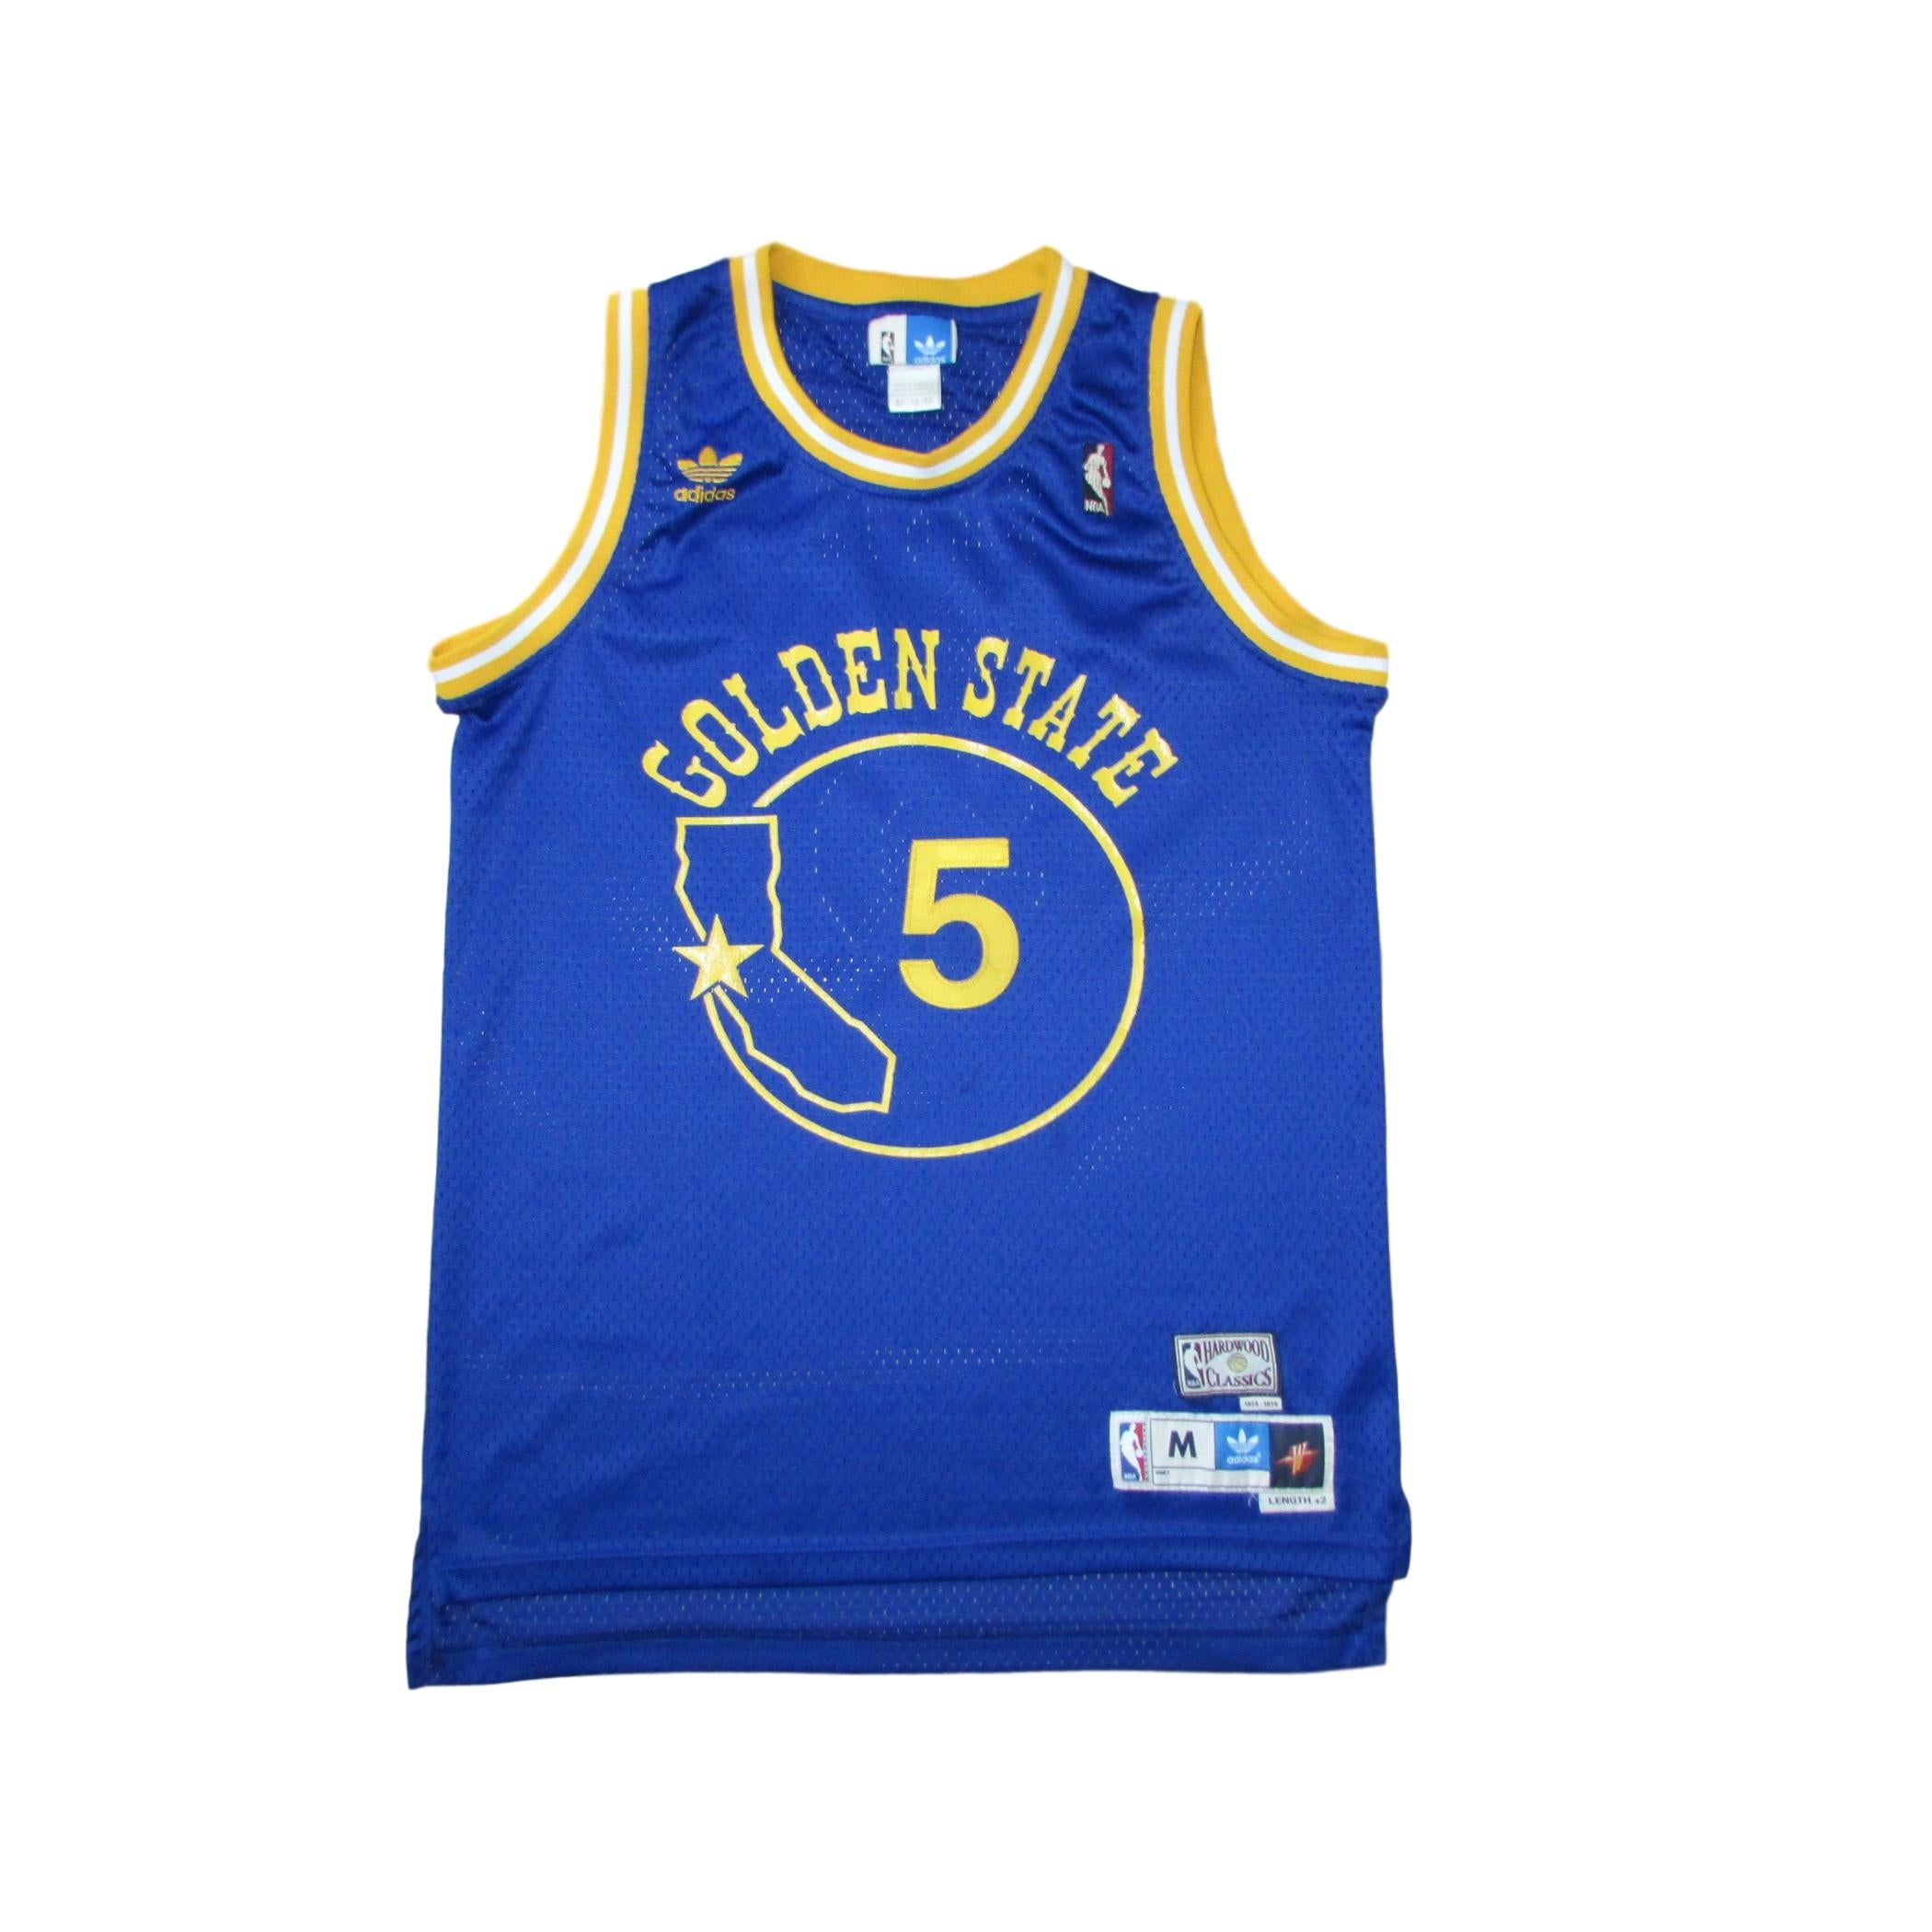 newest 61b5f 8add1 Golden State Warriors Baron Davis Hardwood Classics Basketball Jersey Sz M